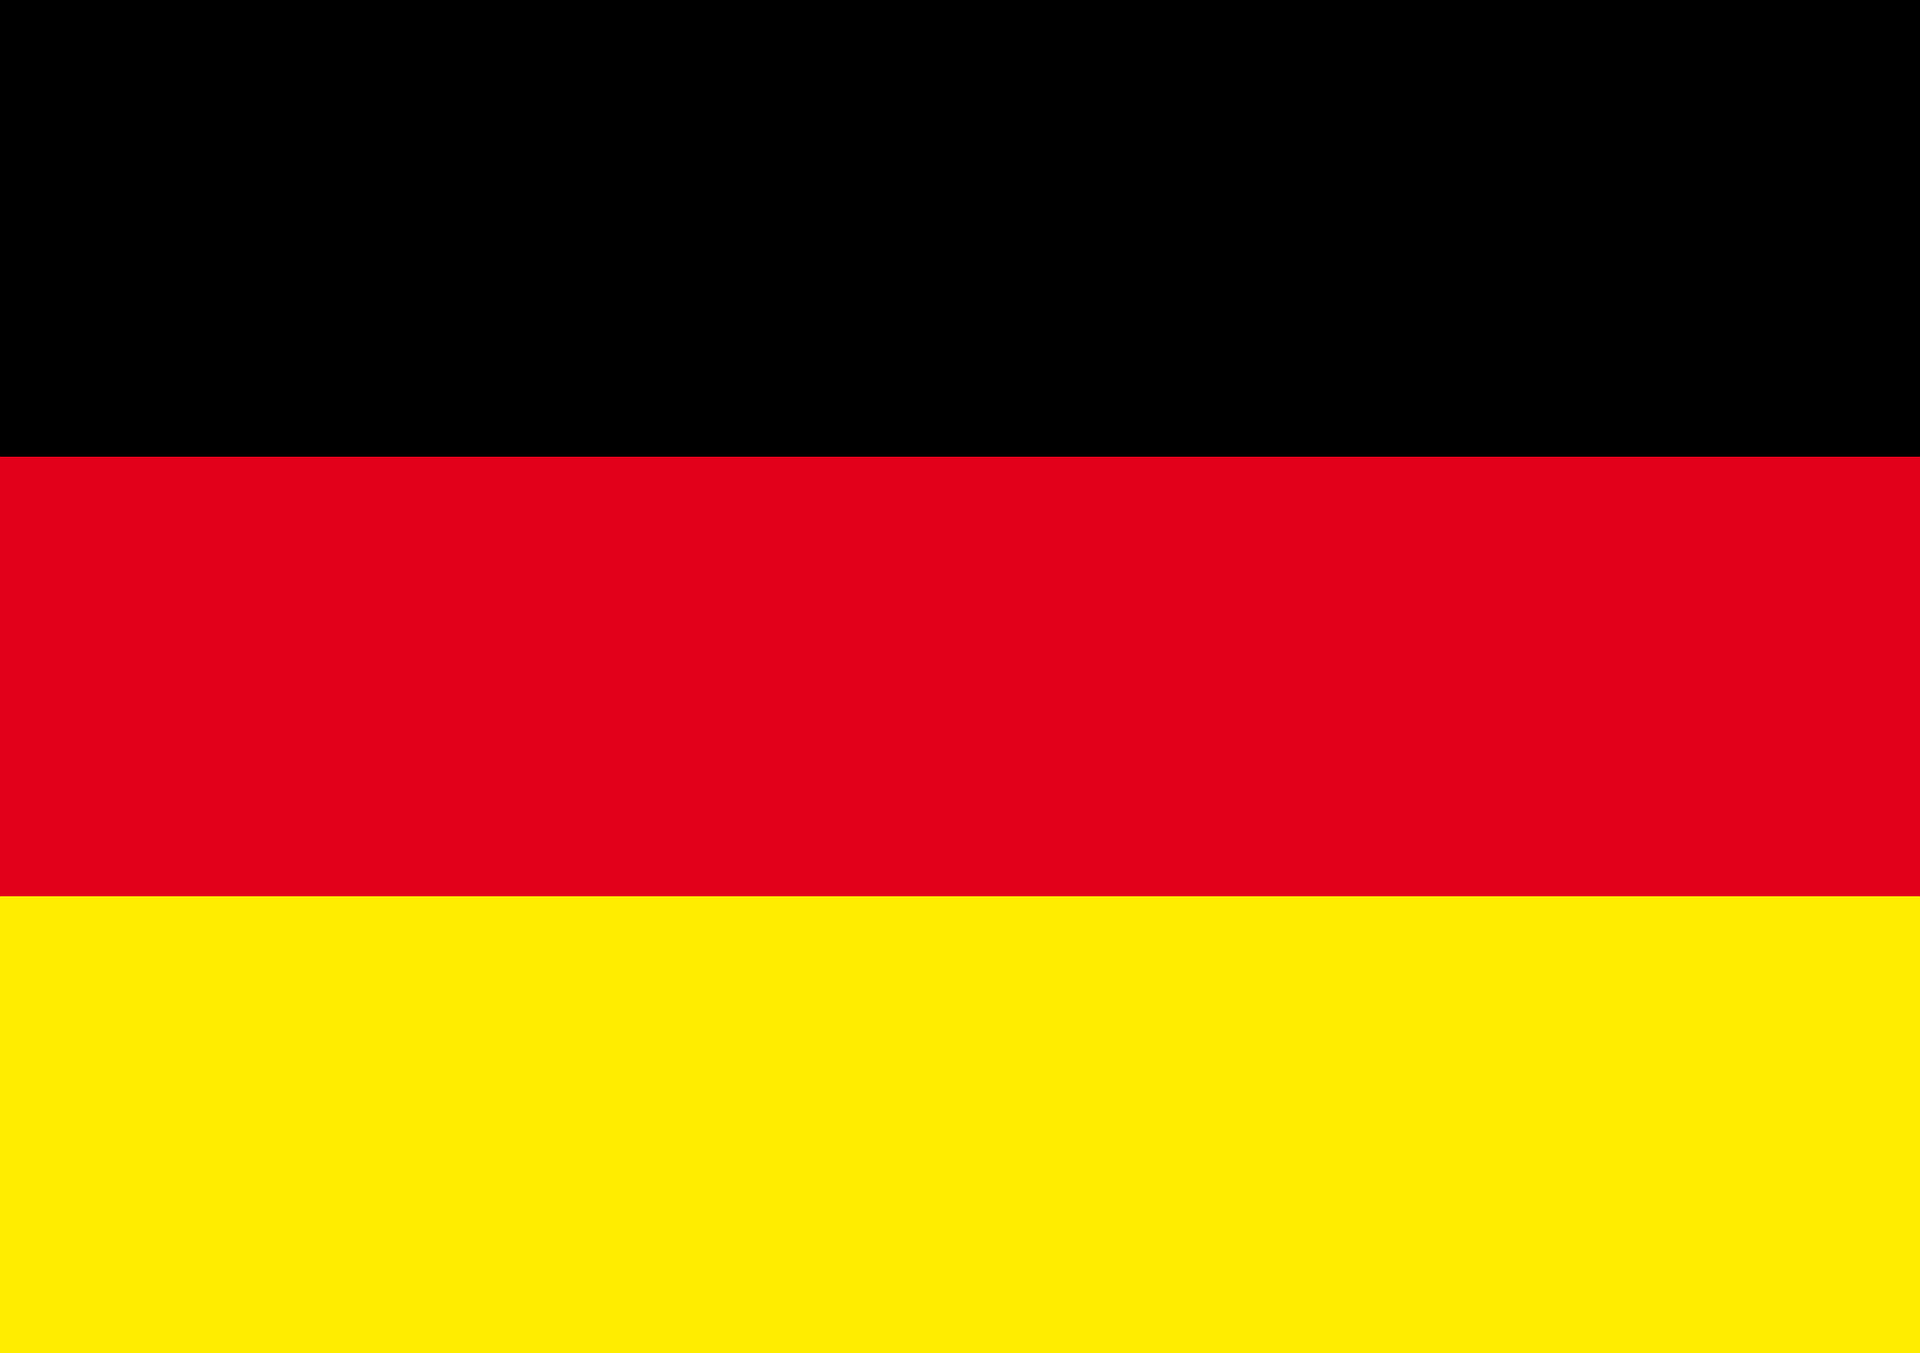 독일(GERMANY)